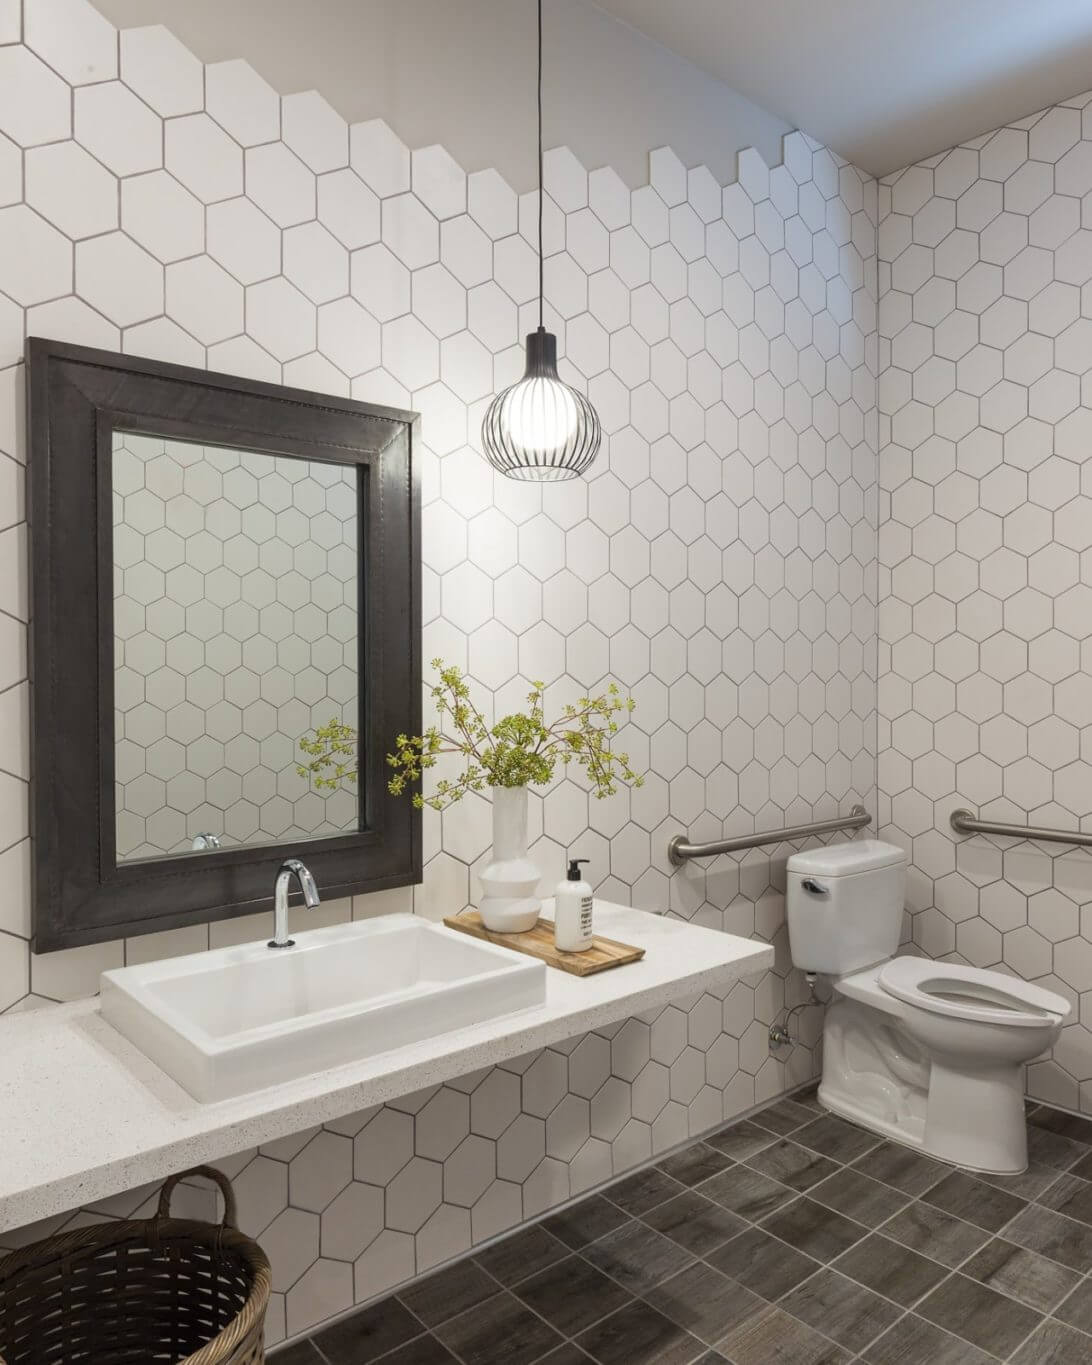 How To Do Wall Tile In Bathroom: Your Complete Guide To Bathroom Tile